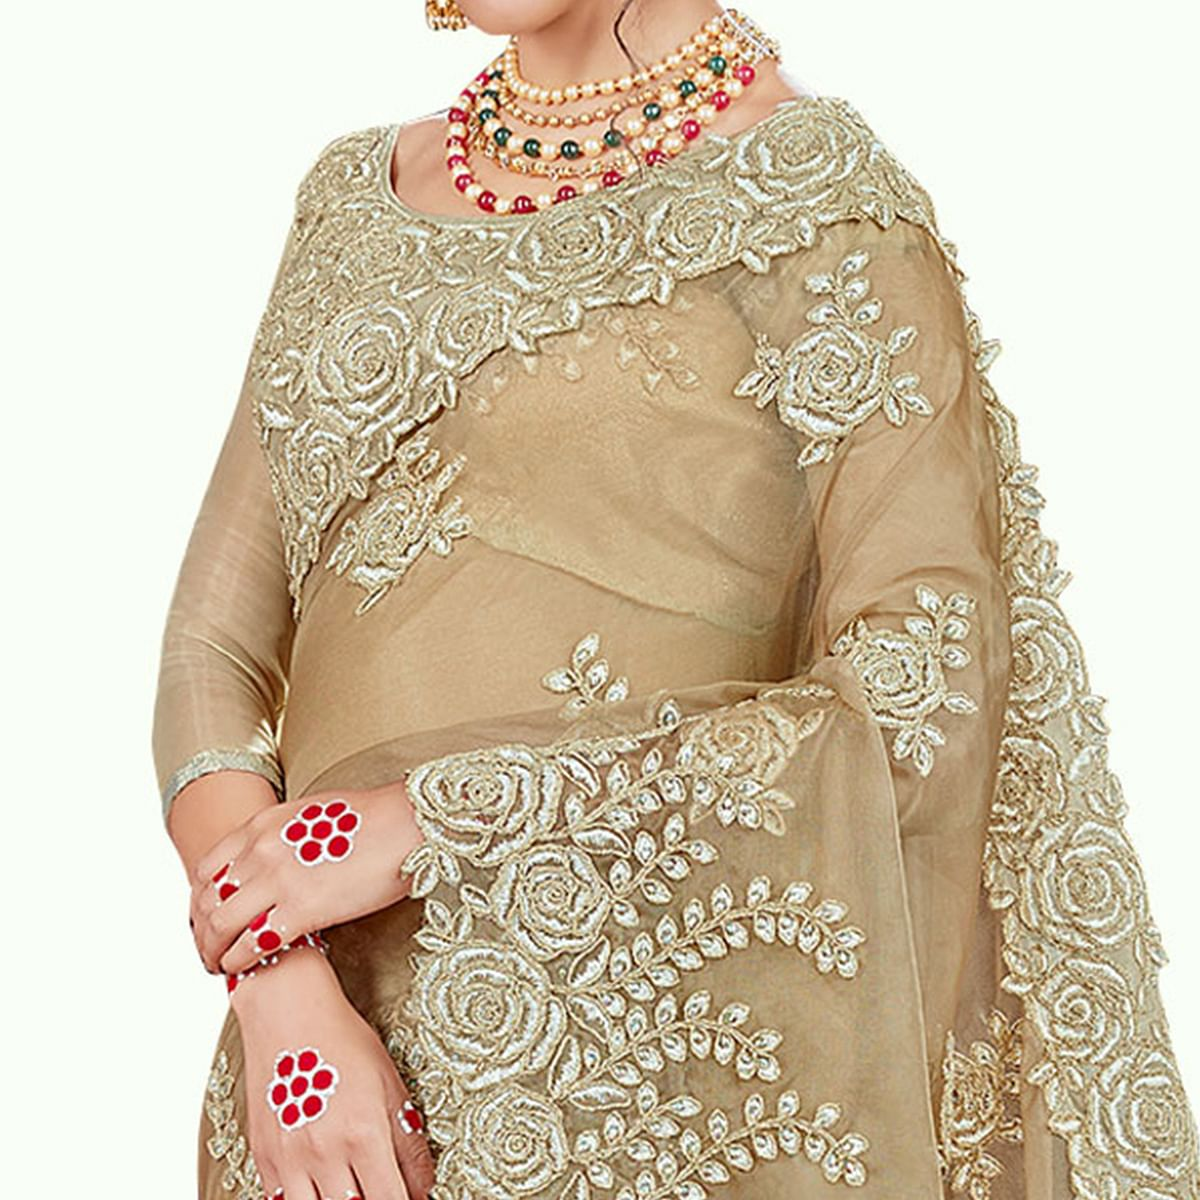 Breathtaking Chiku Colored Party Wear Embroidered Tissue Saree